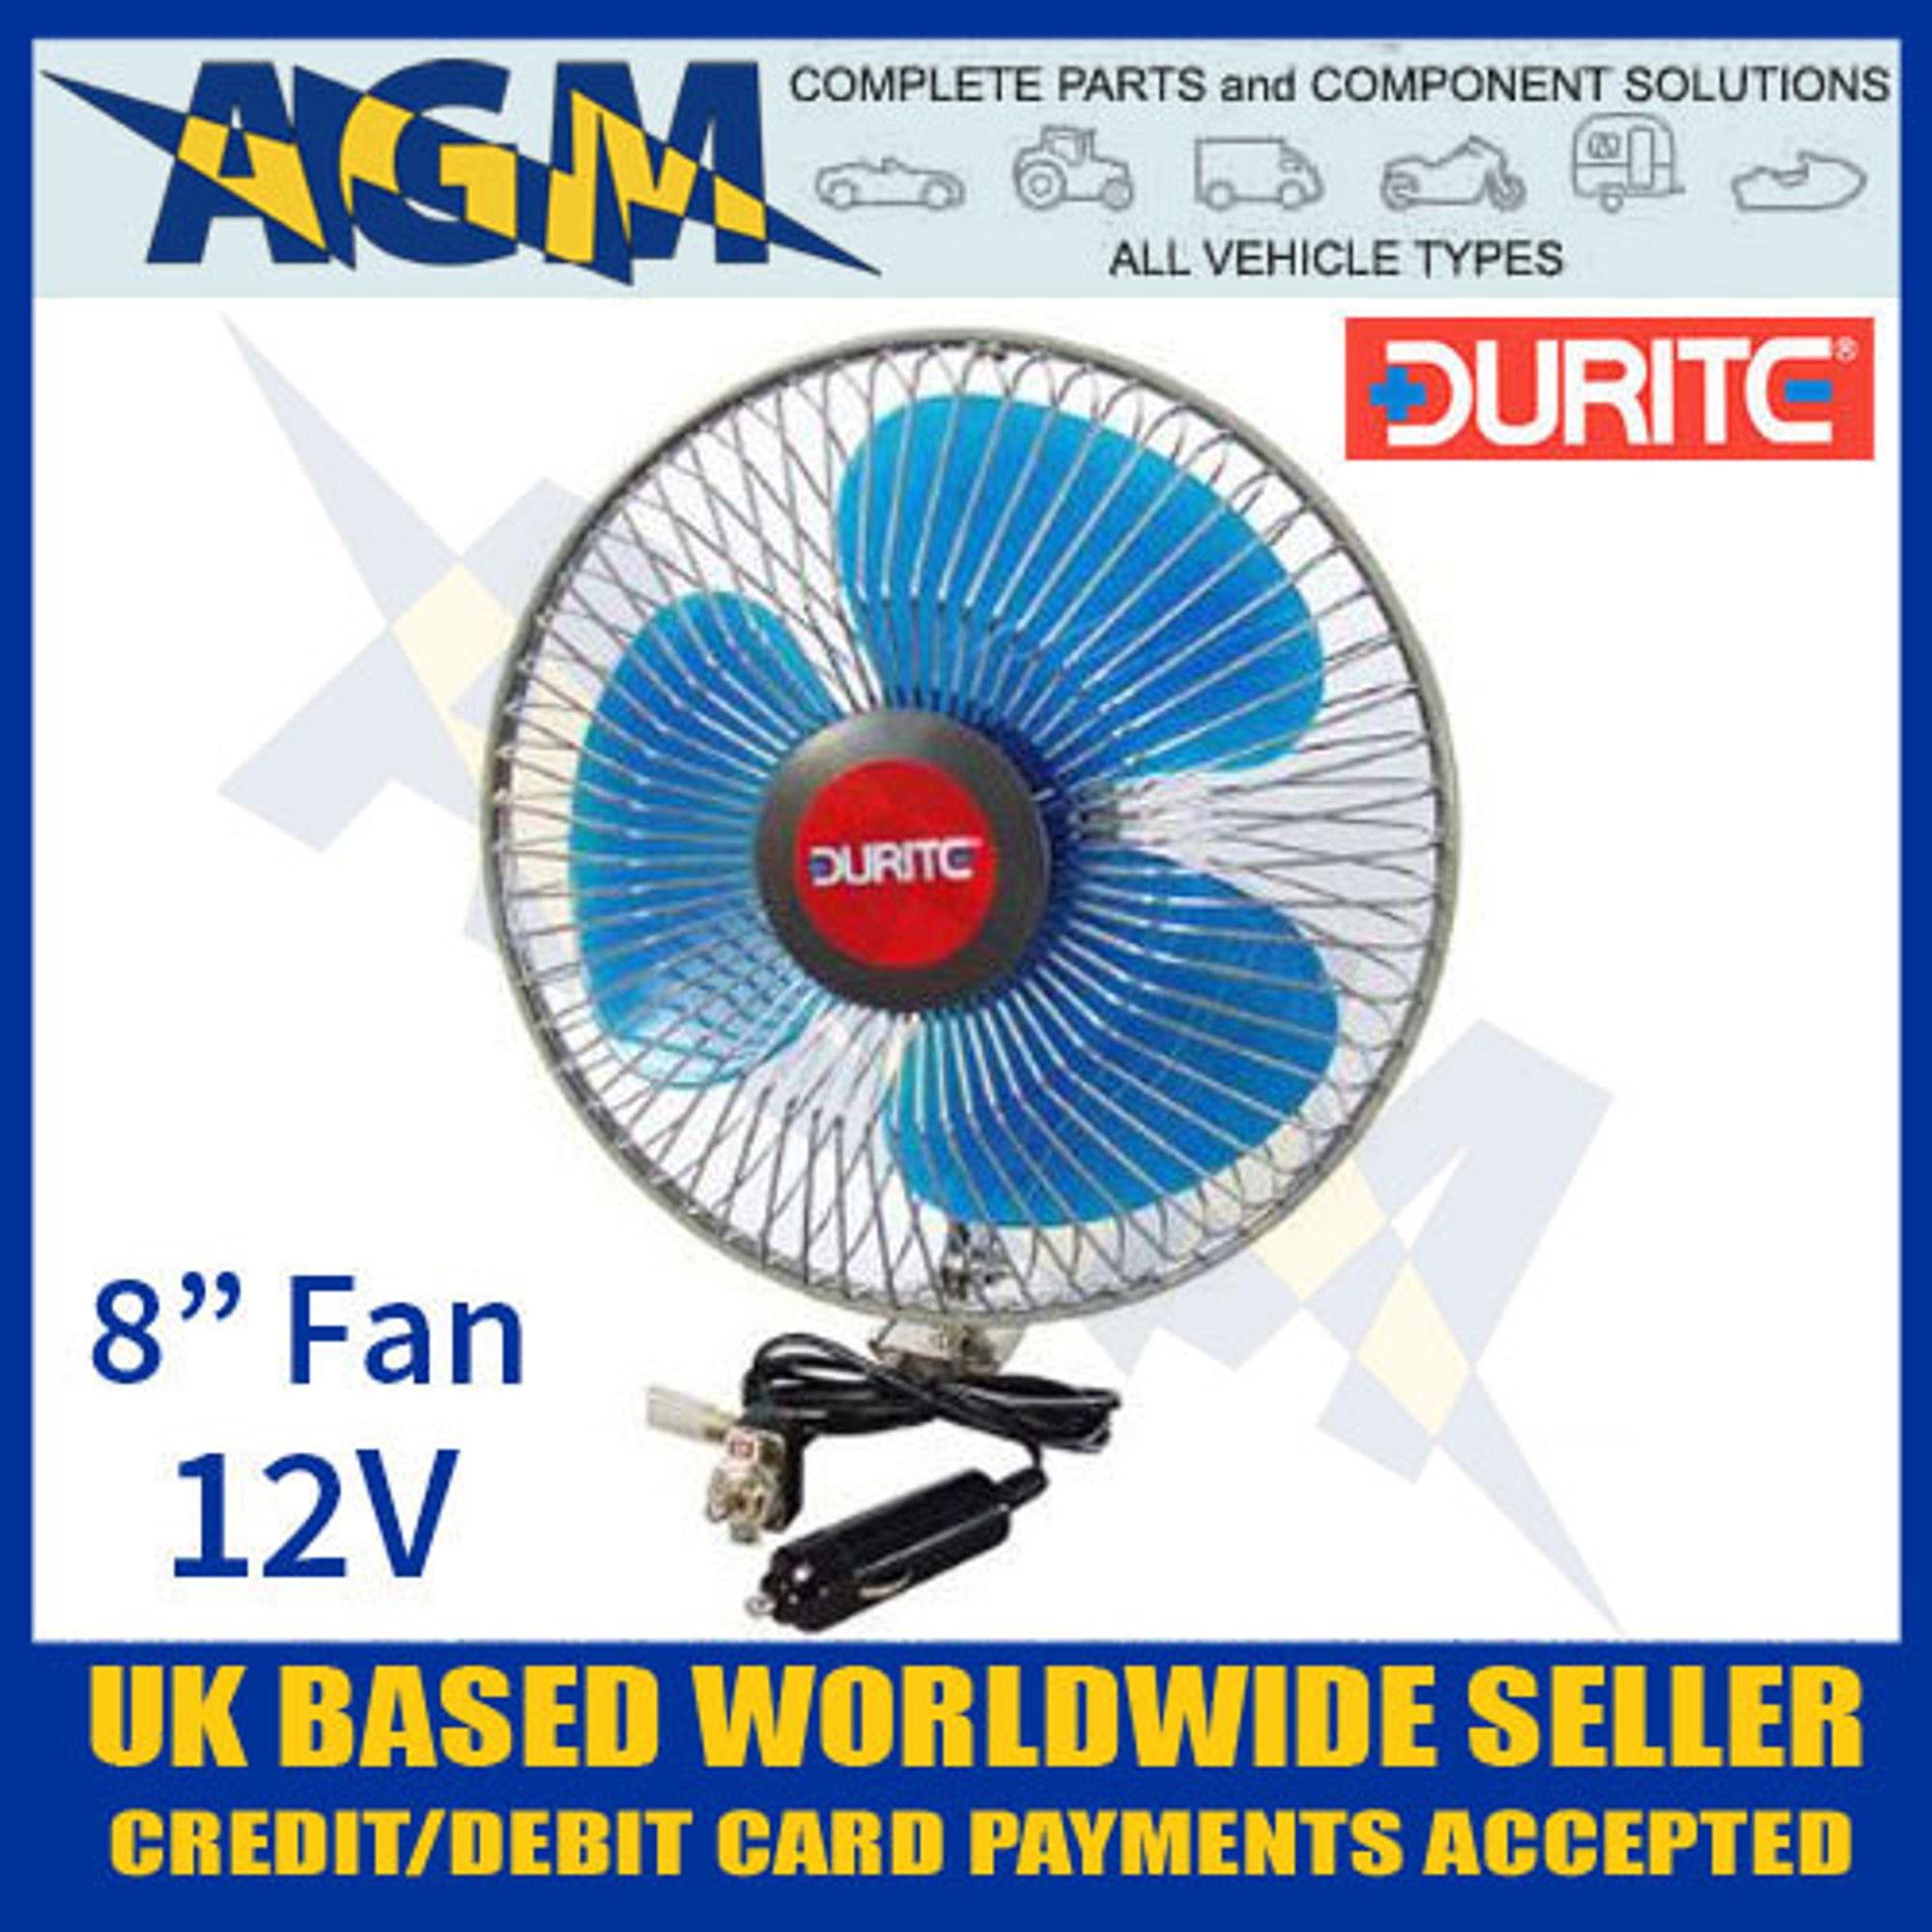 In Vehicle 12V 8 Inch Oscillating Fan Durite 0-210-62